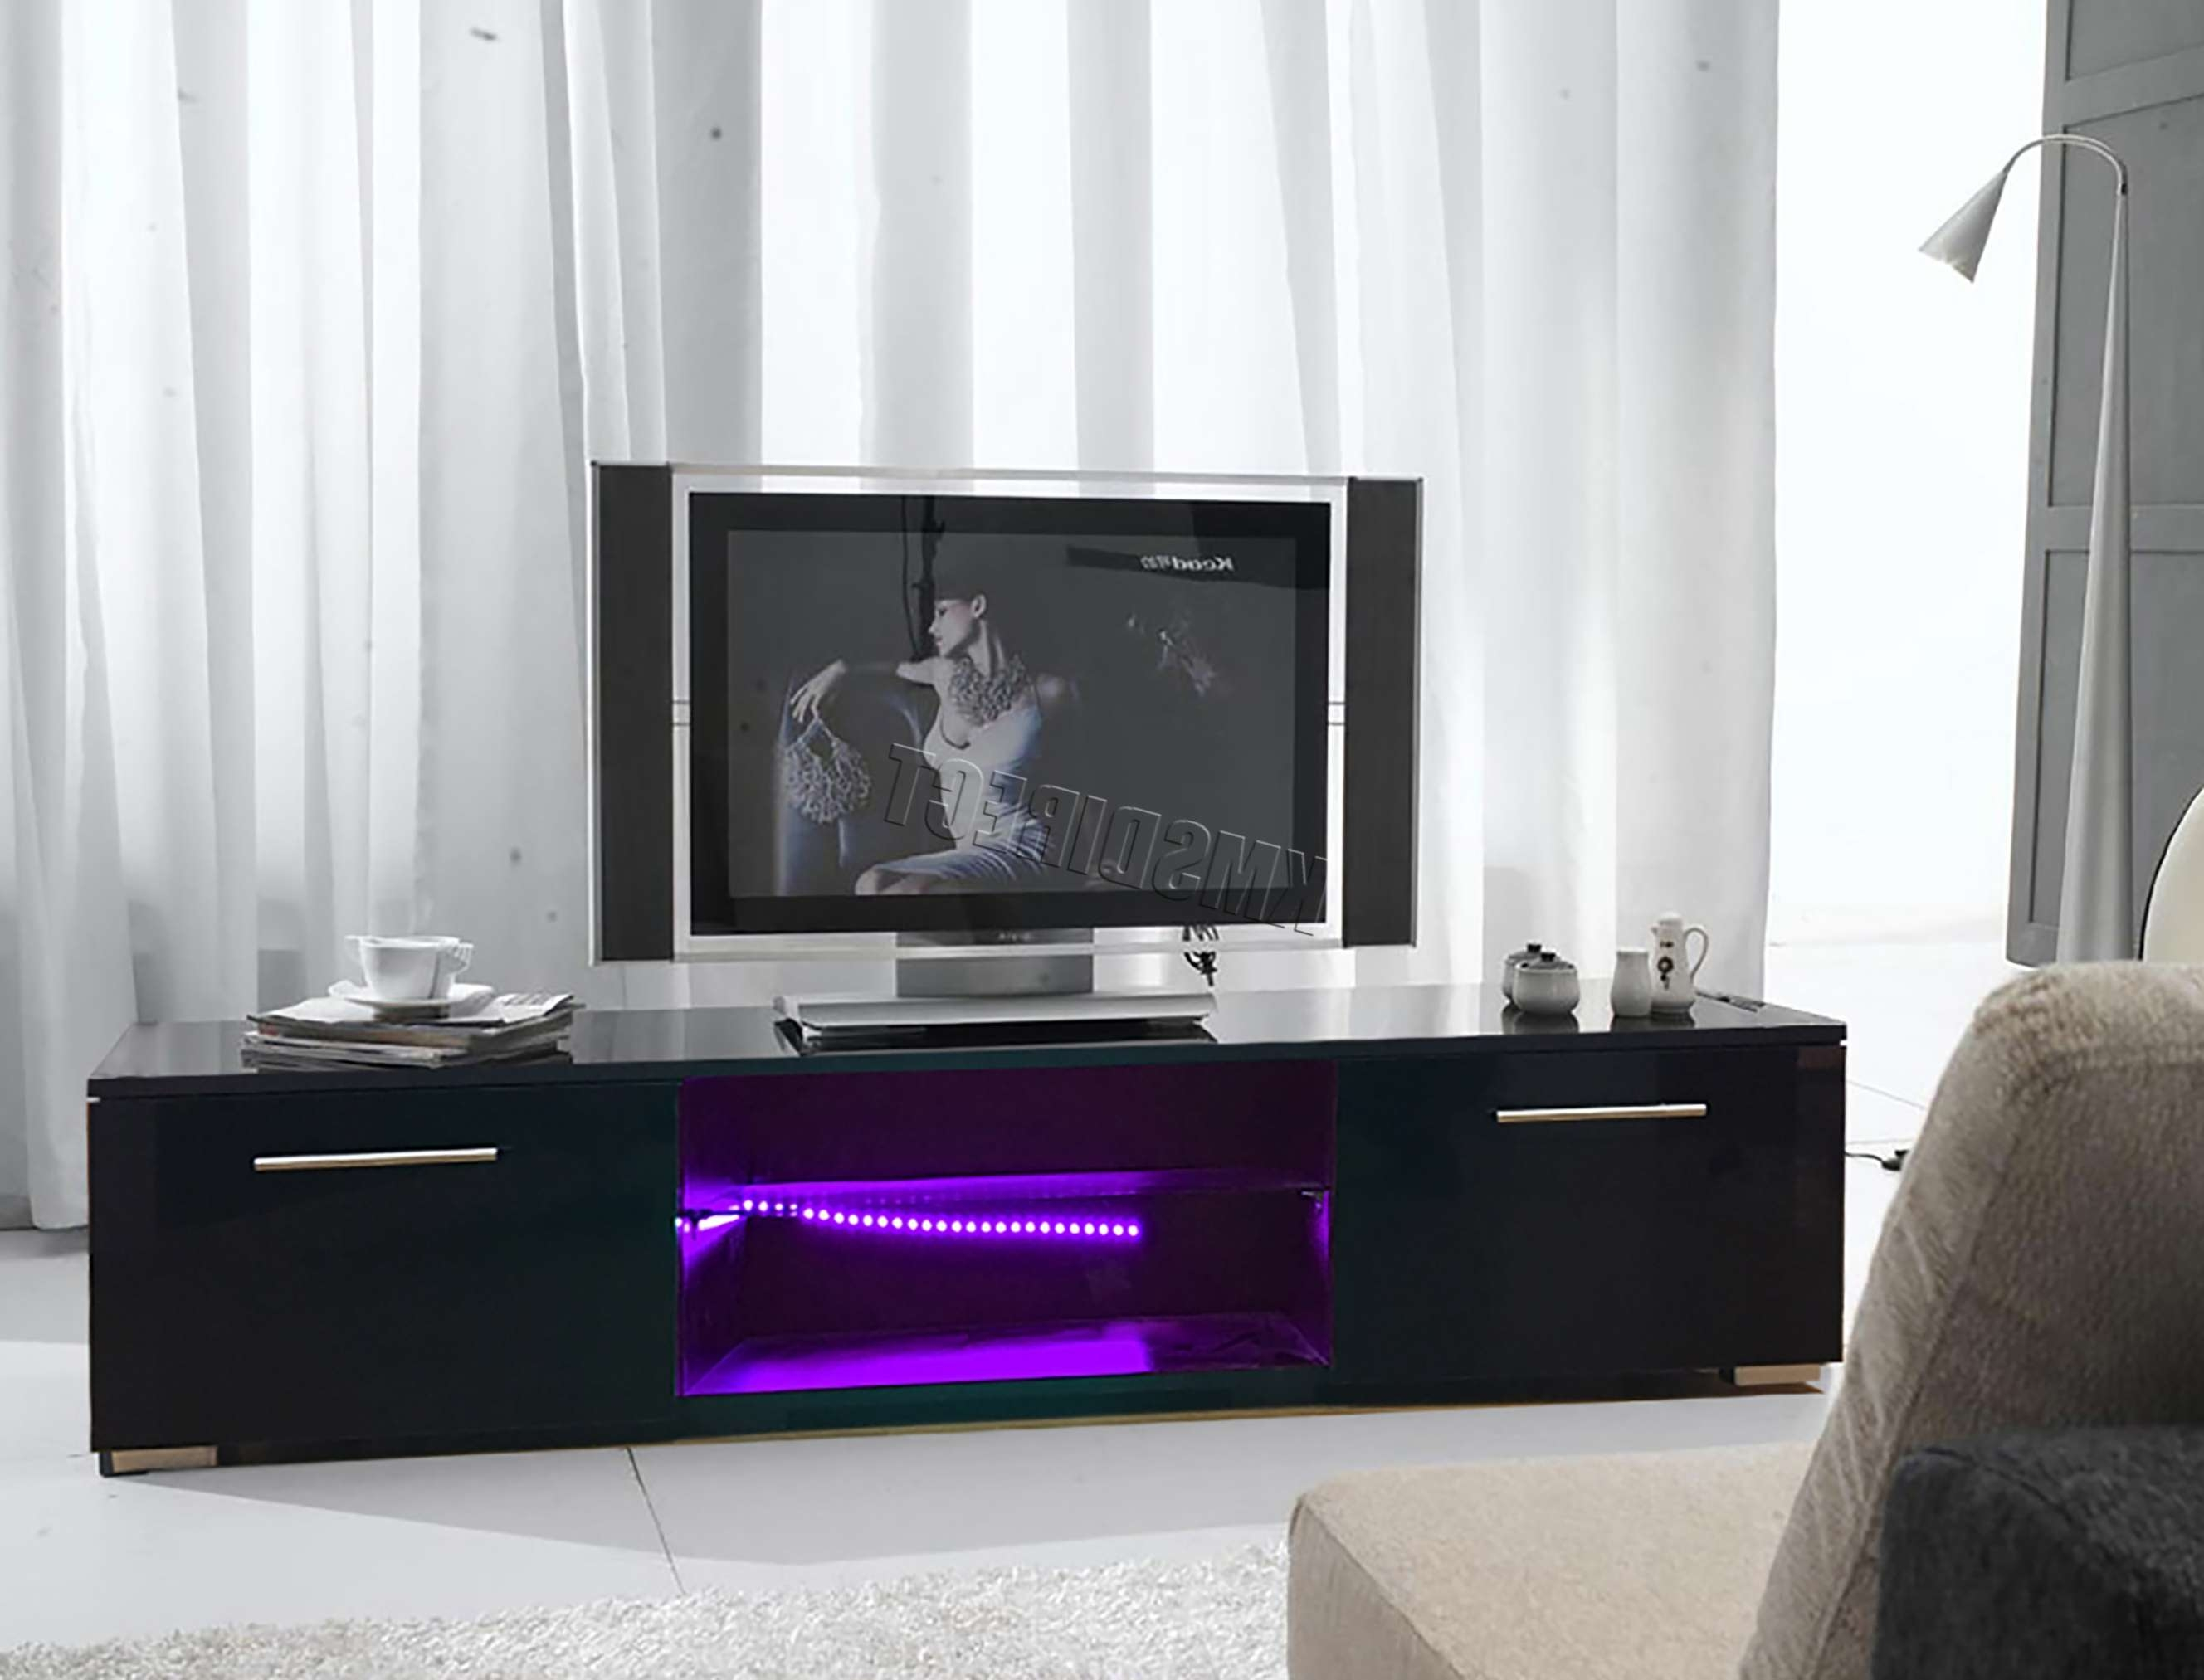 Foxhunter Modern High Gloss Matt Tv Cabinet Unit Stand Black Rgb Throughout Black Gloss Tv Cabinets (View 8 of 20)